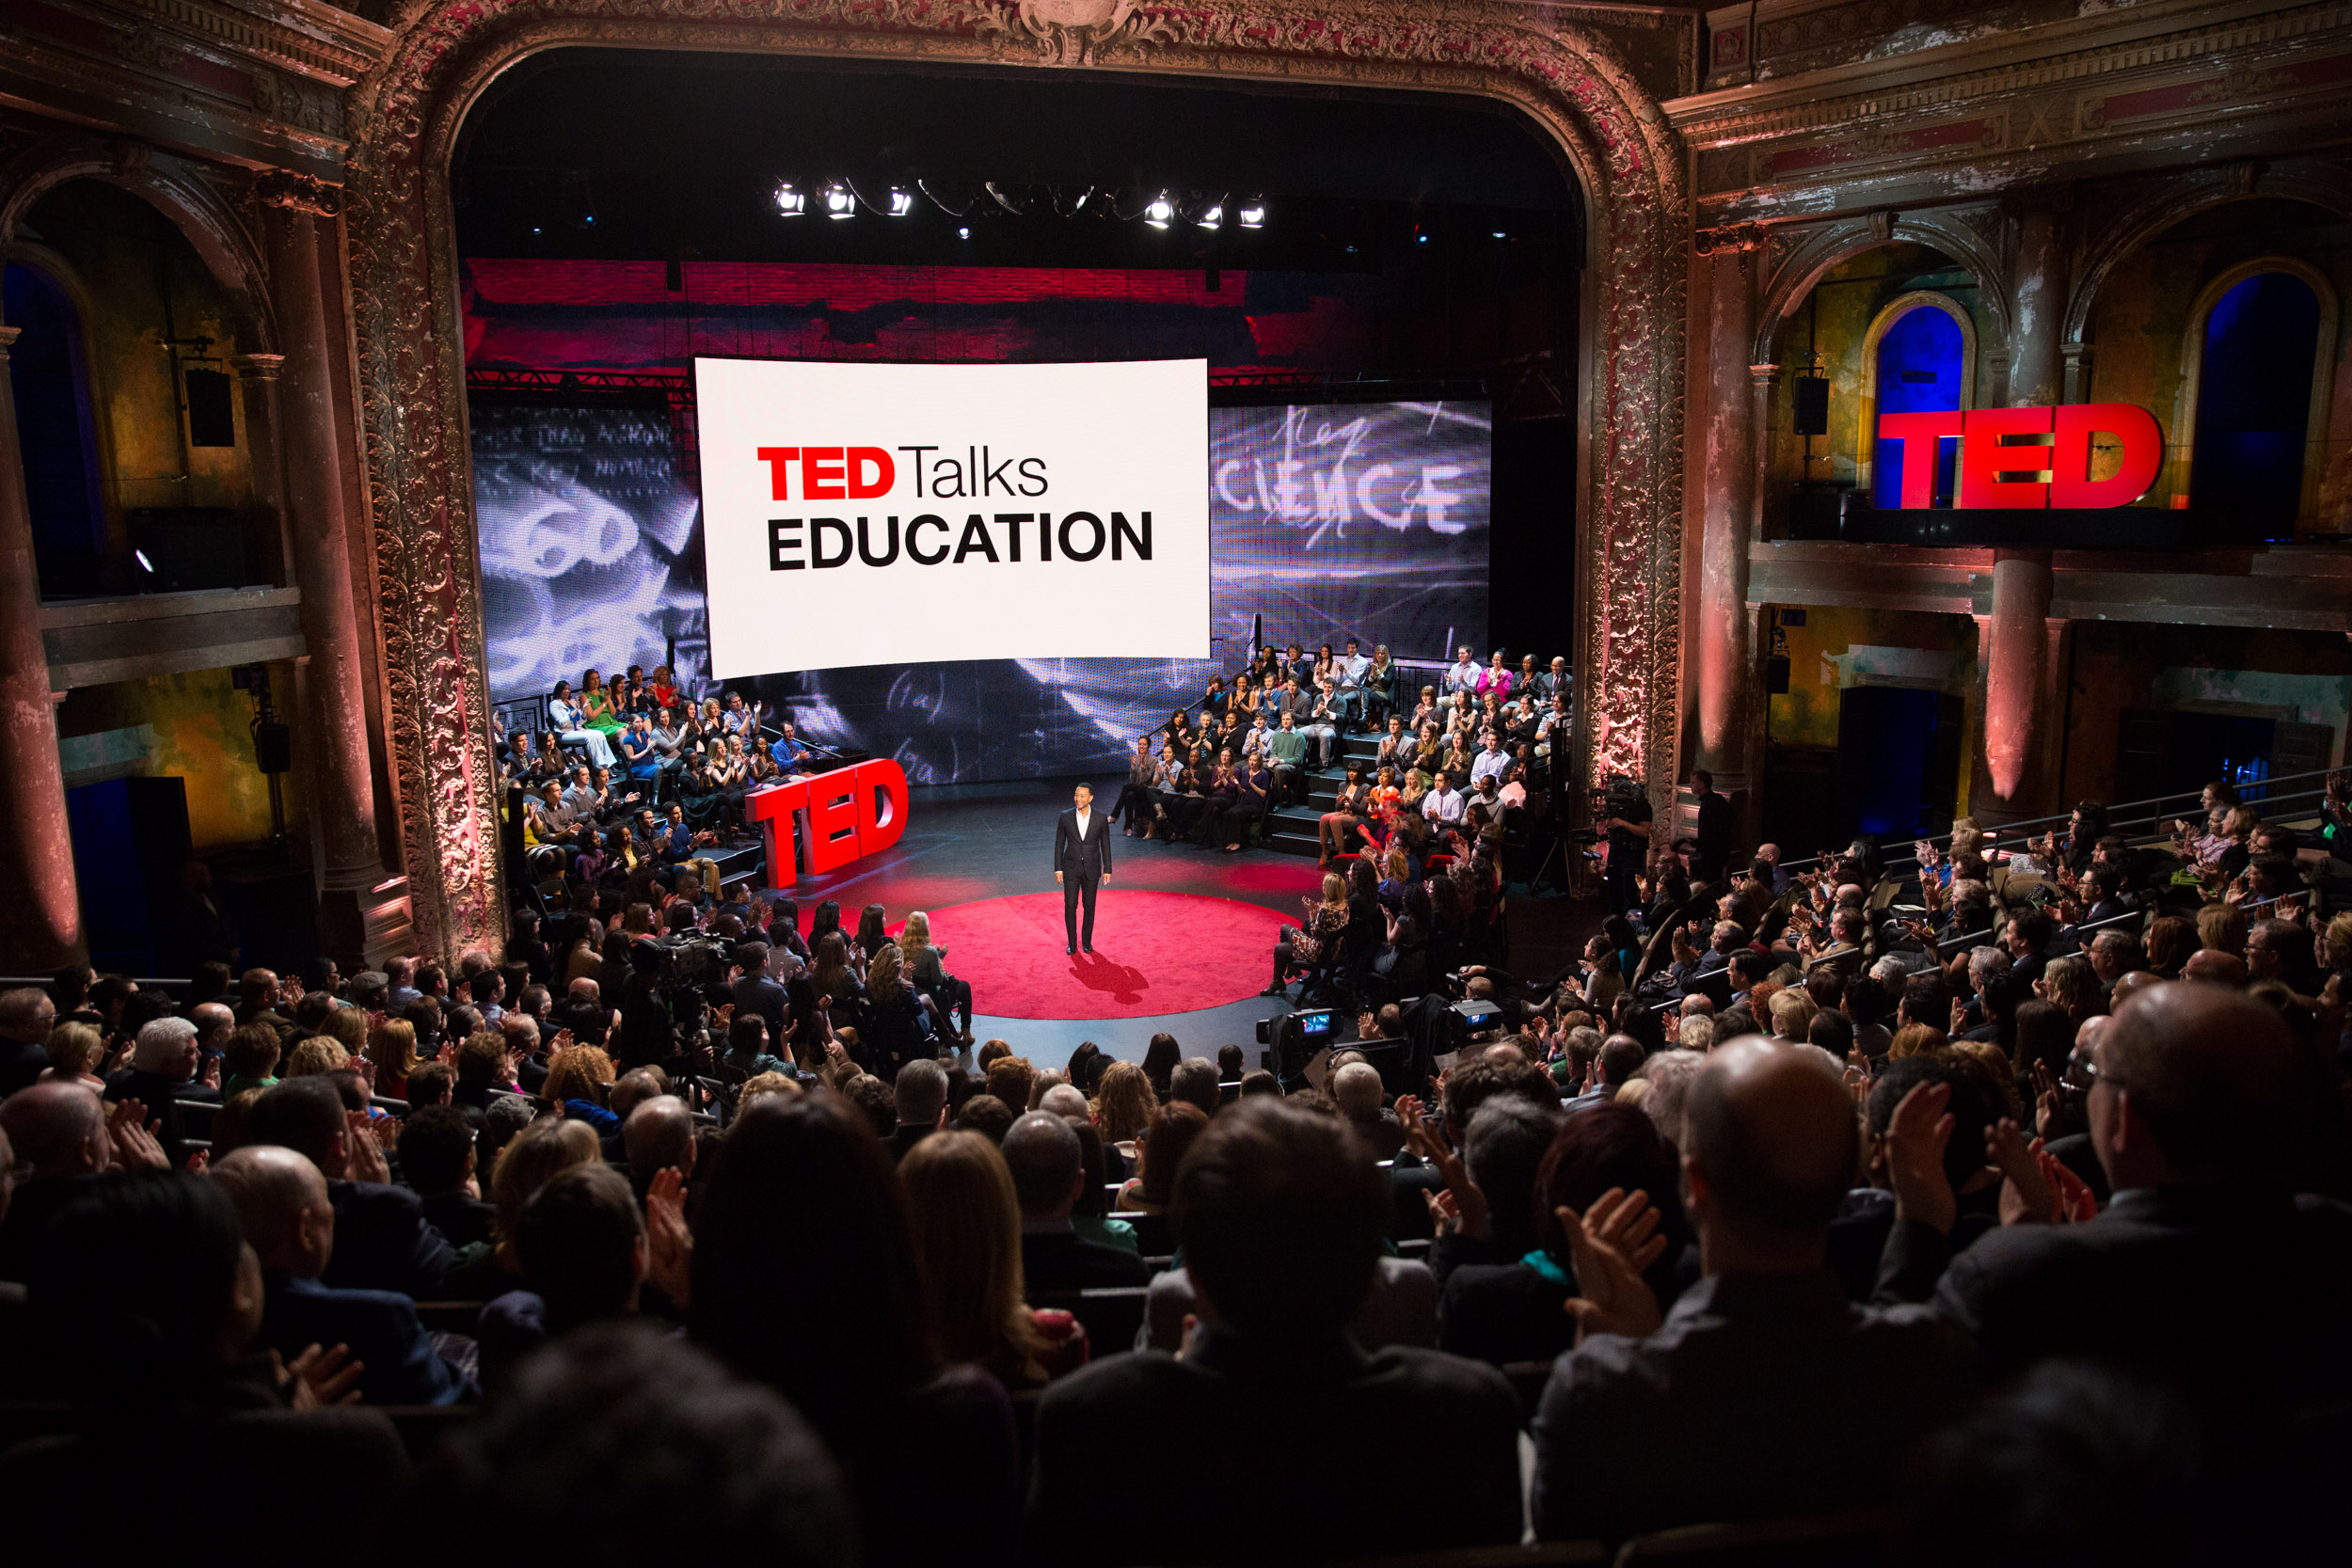 ted_talks_education_2139172409_1200x627